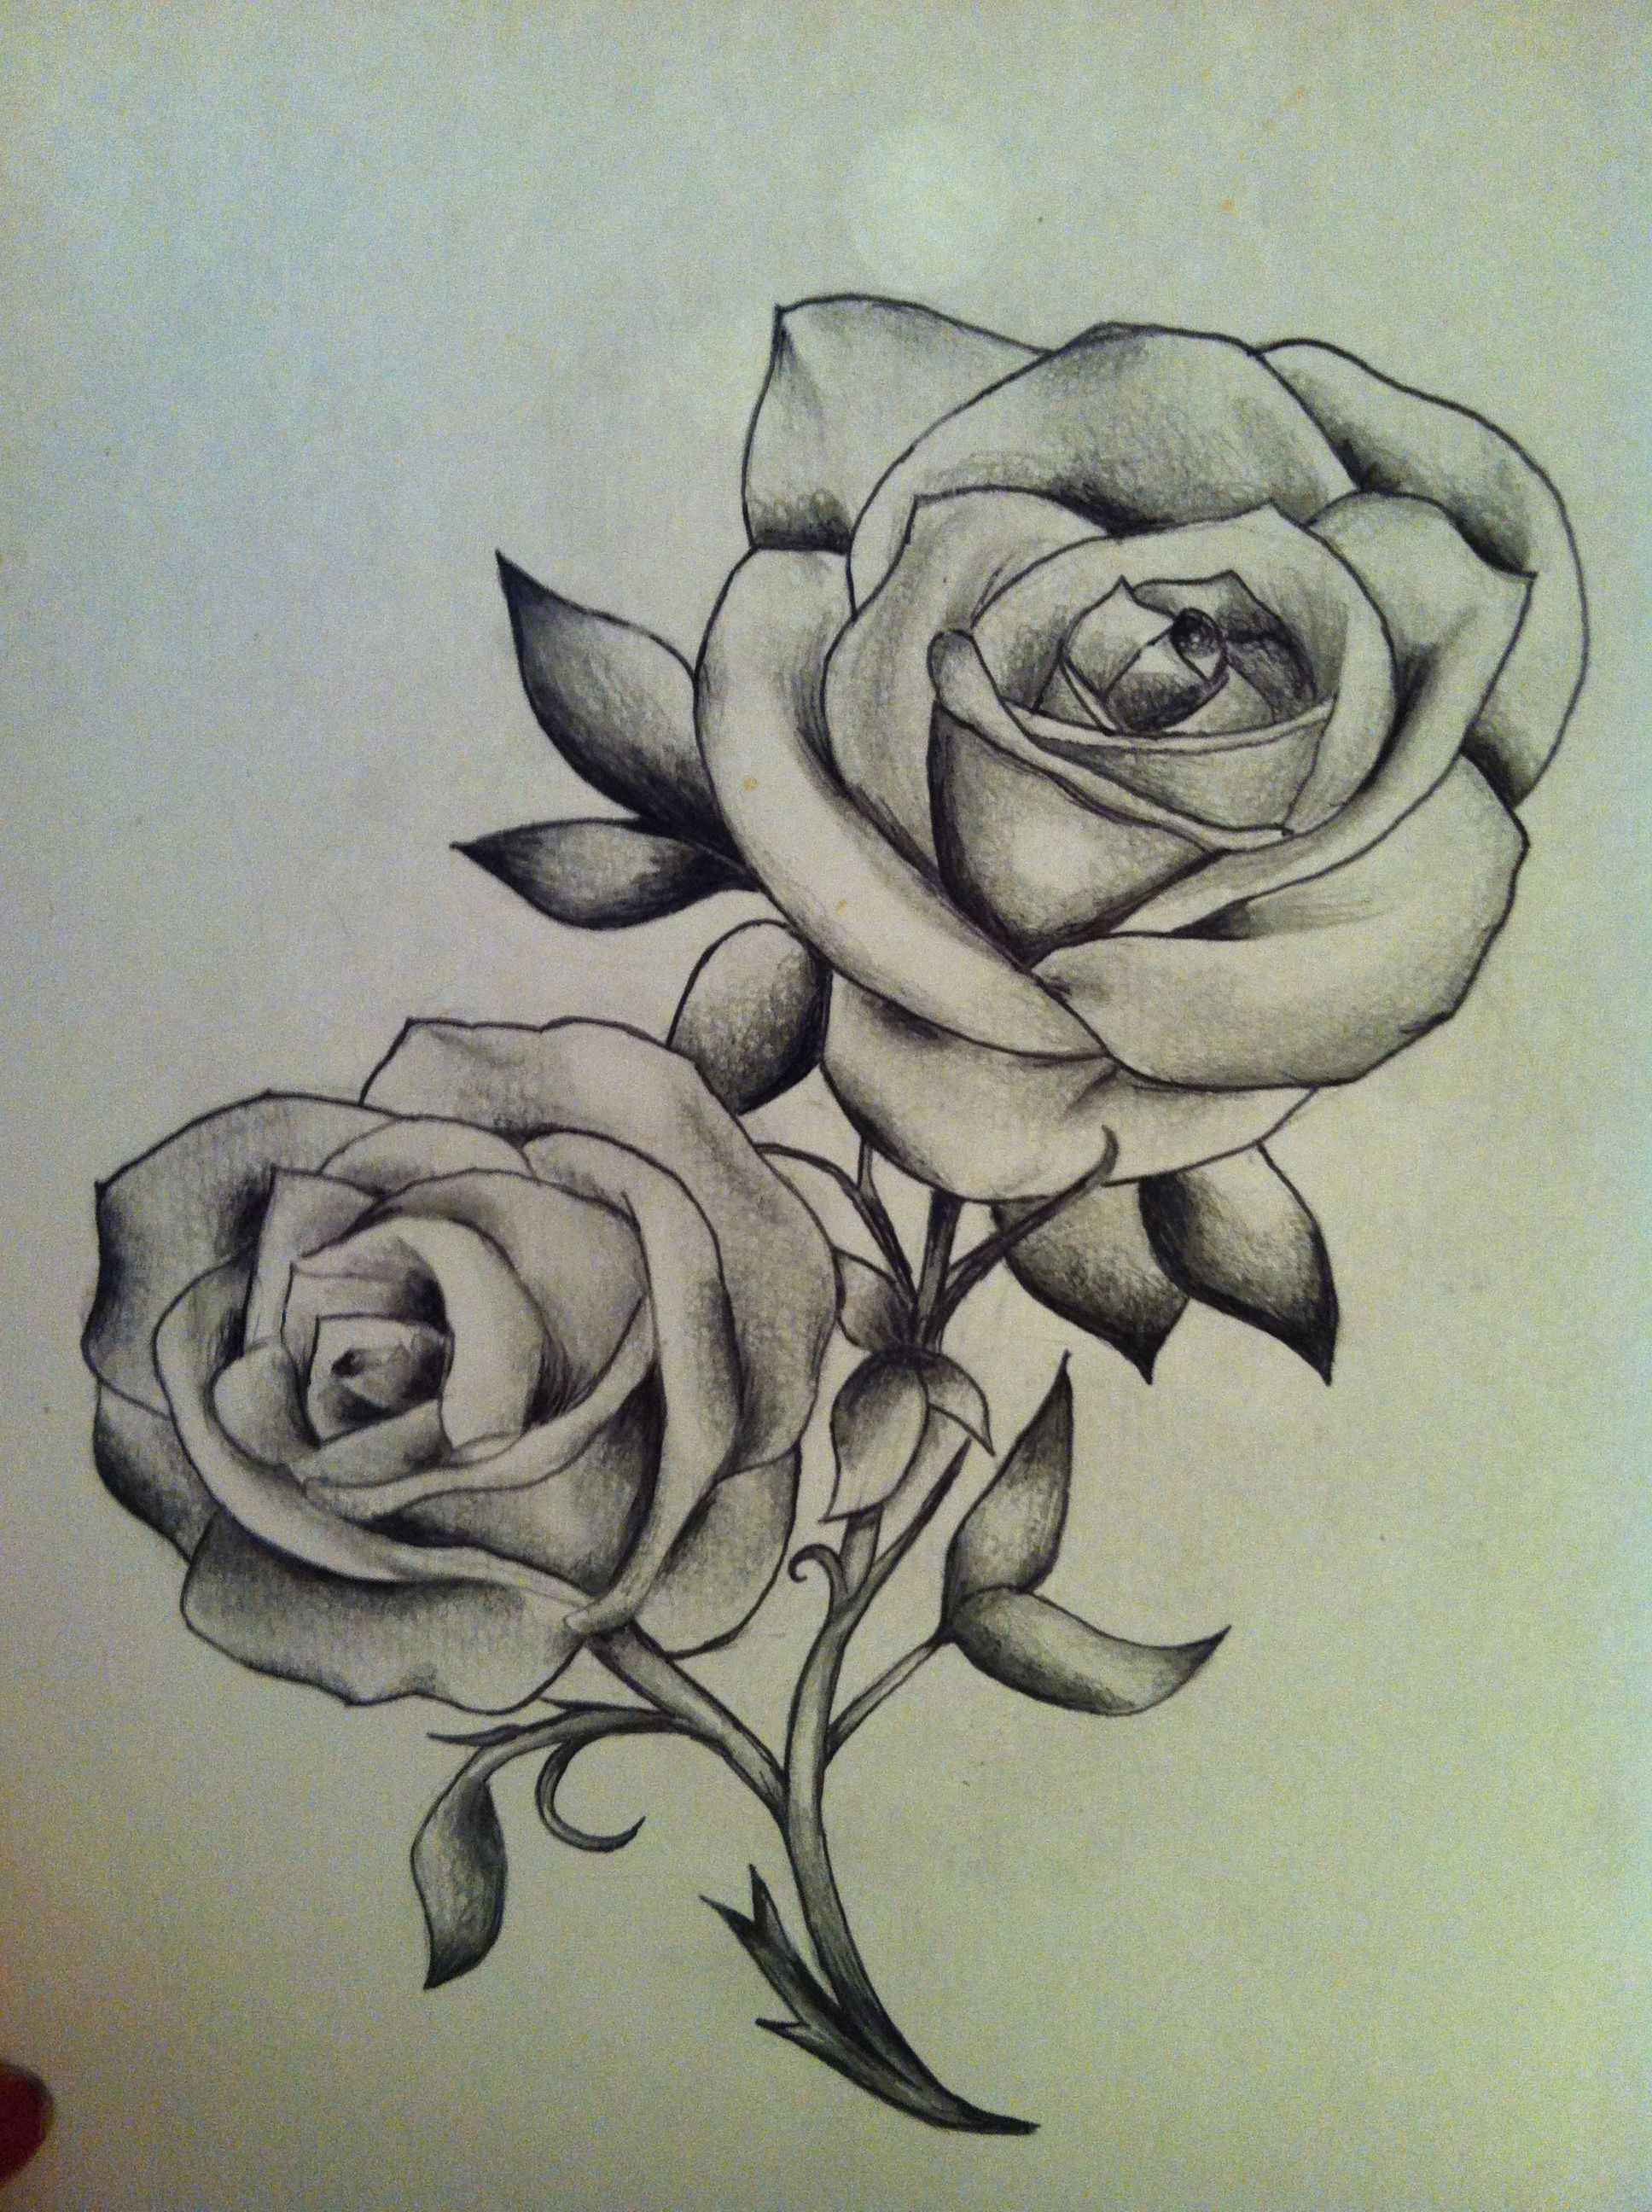 Tattoo Roses Art Black And White Sketch Drawing Classic Black